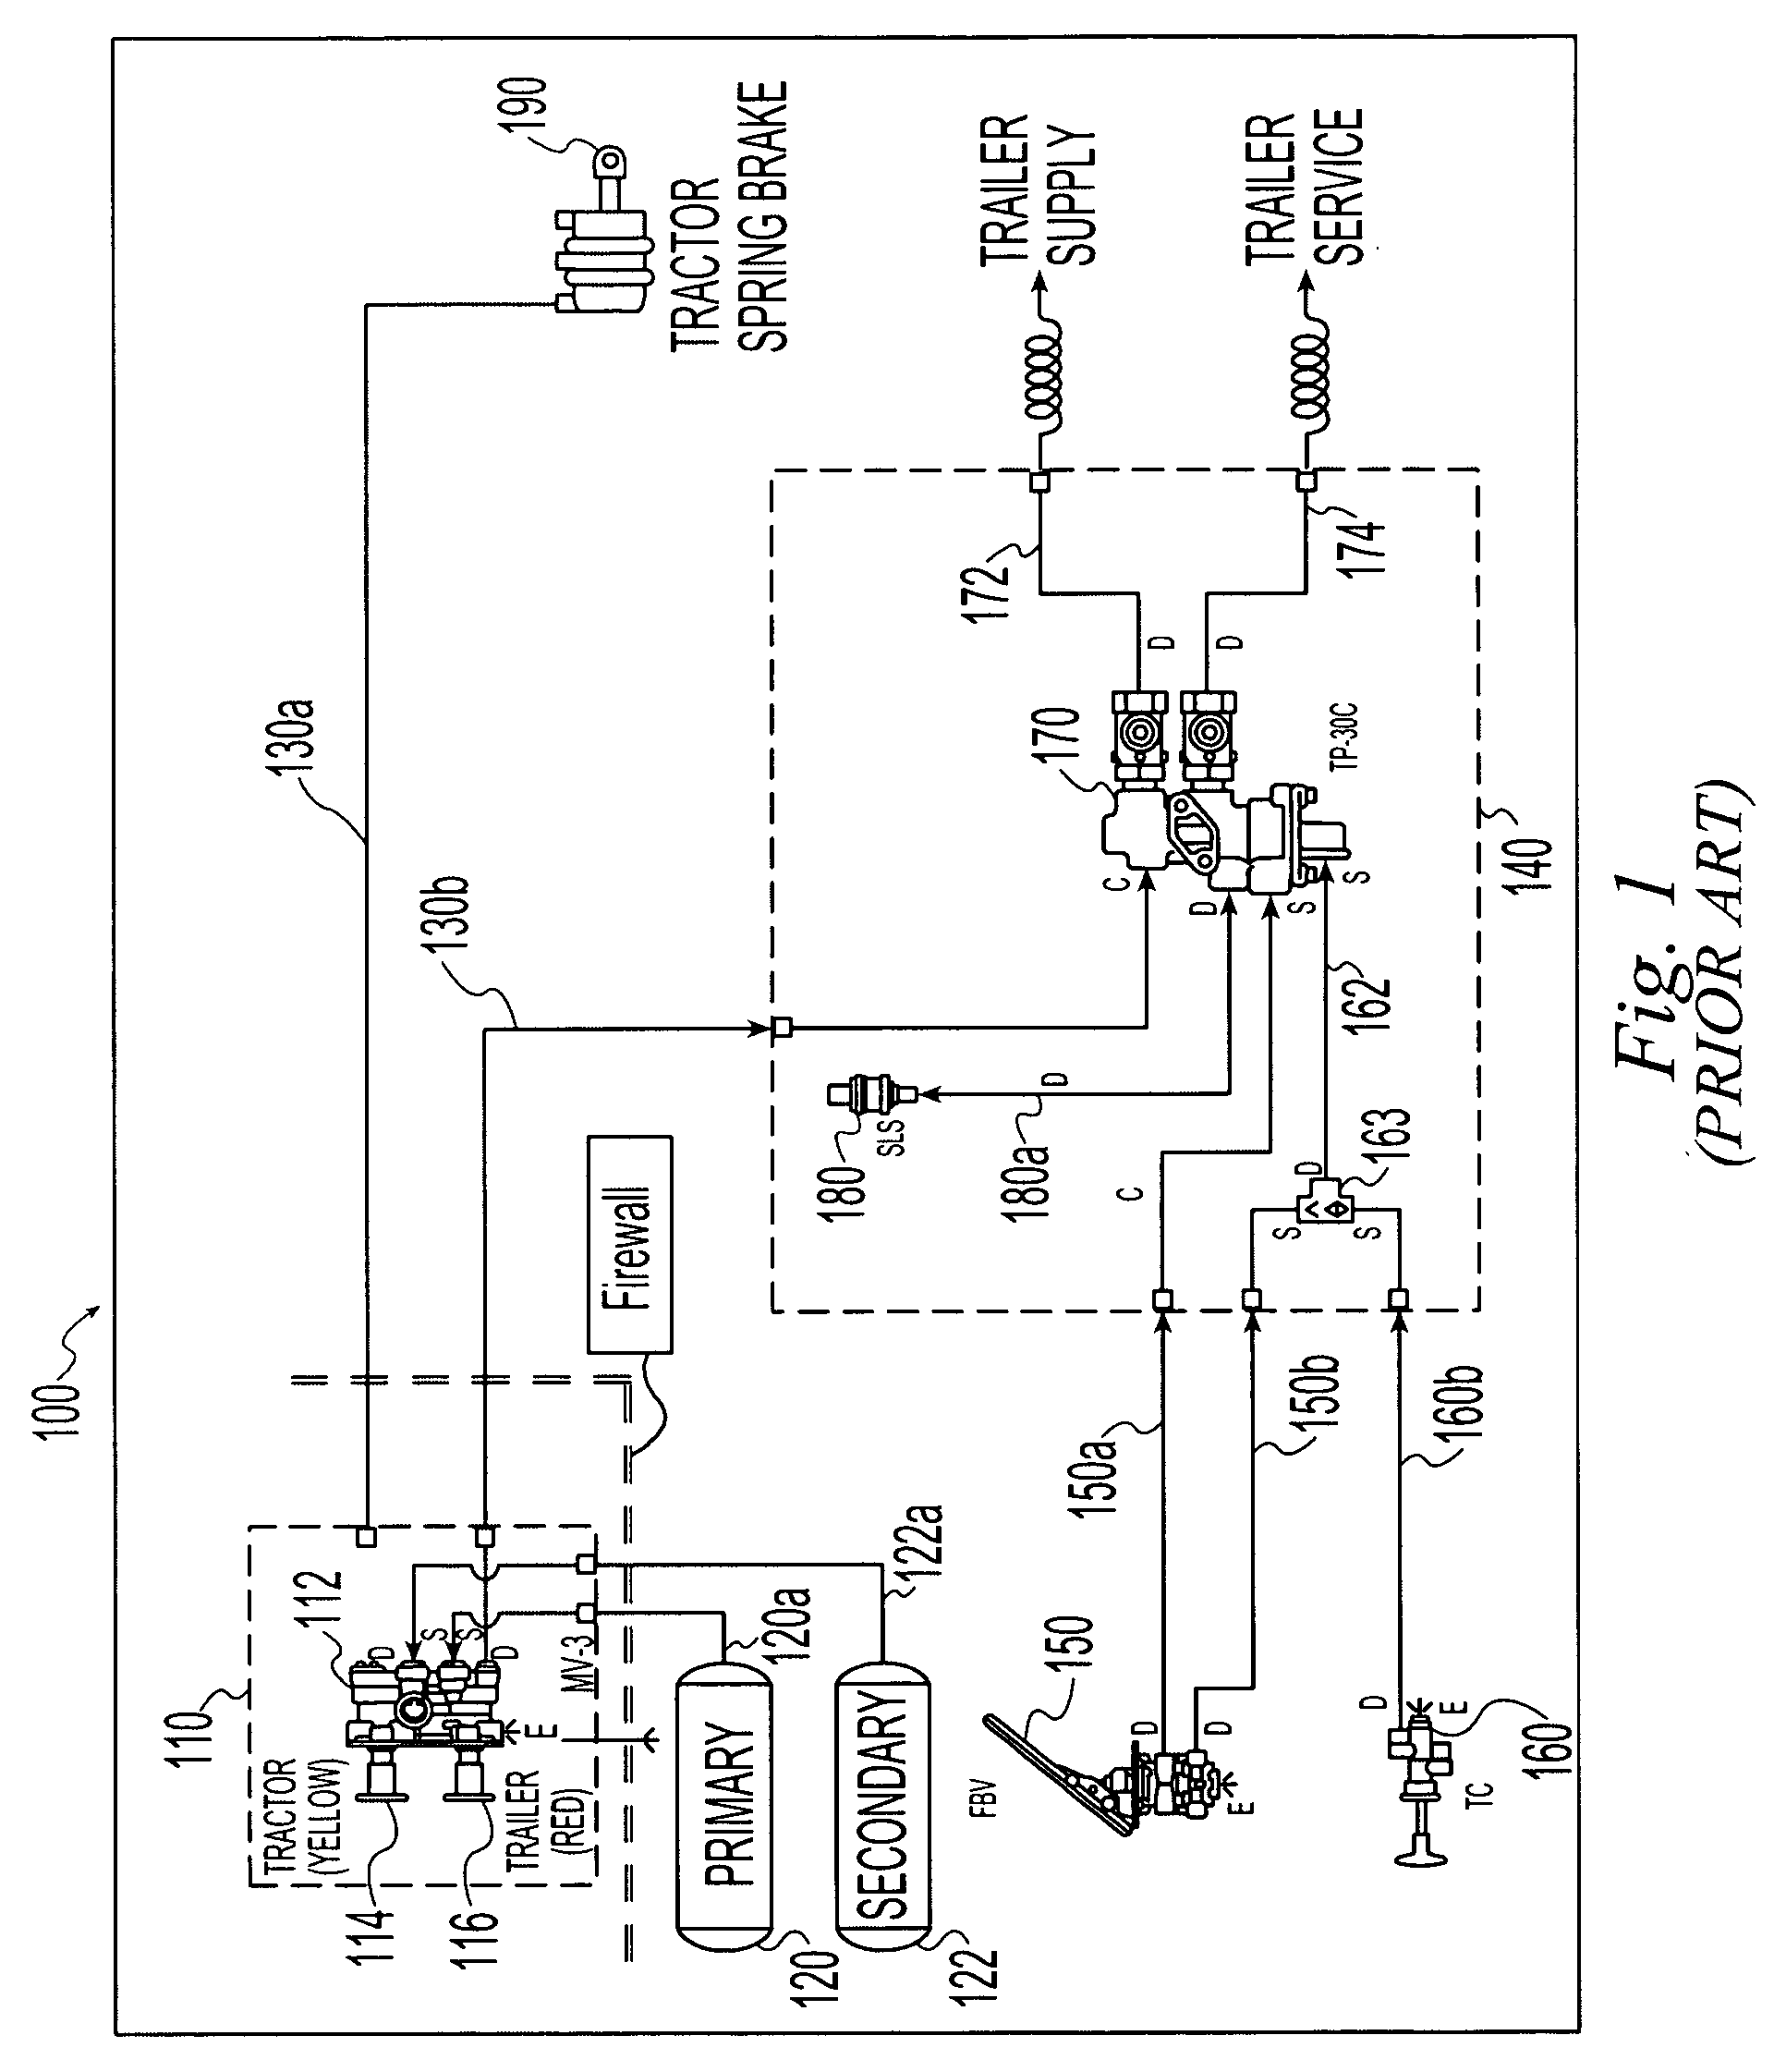 US20040187674A1 20040930 D00001?resize\=840%2C981 wabco abs wiring diagram sae wiring diagrams wabco 4s/4m wiring diagram at edmiracle.co